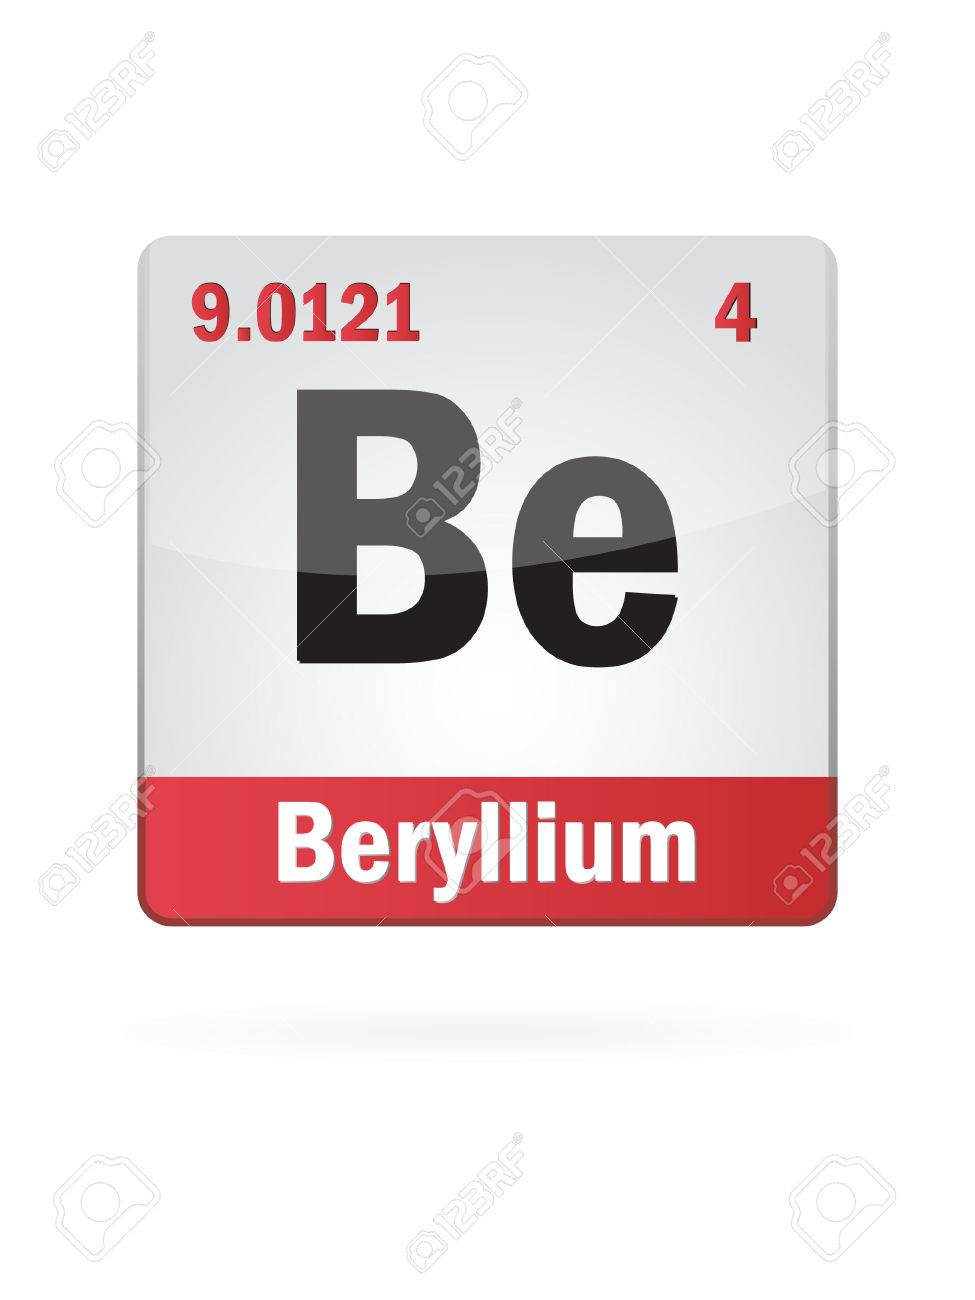 Beryllium symbol illustration royalty free cliparts vectors and beryllium symbol illustration stock vector 23652108 buycottarizona Image collections